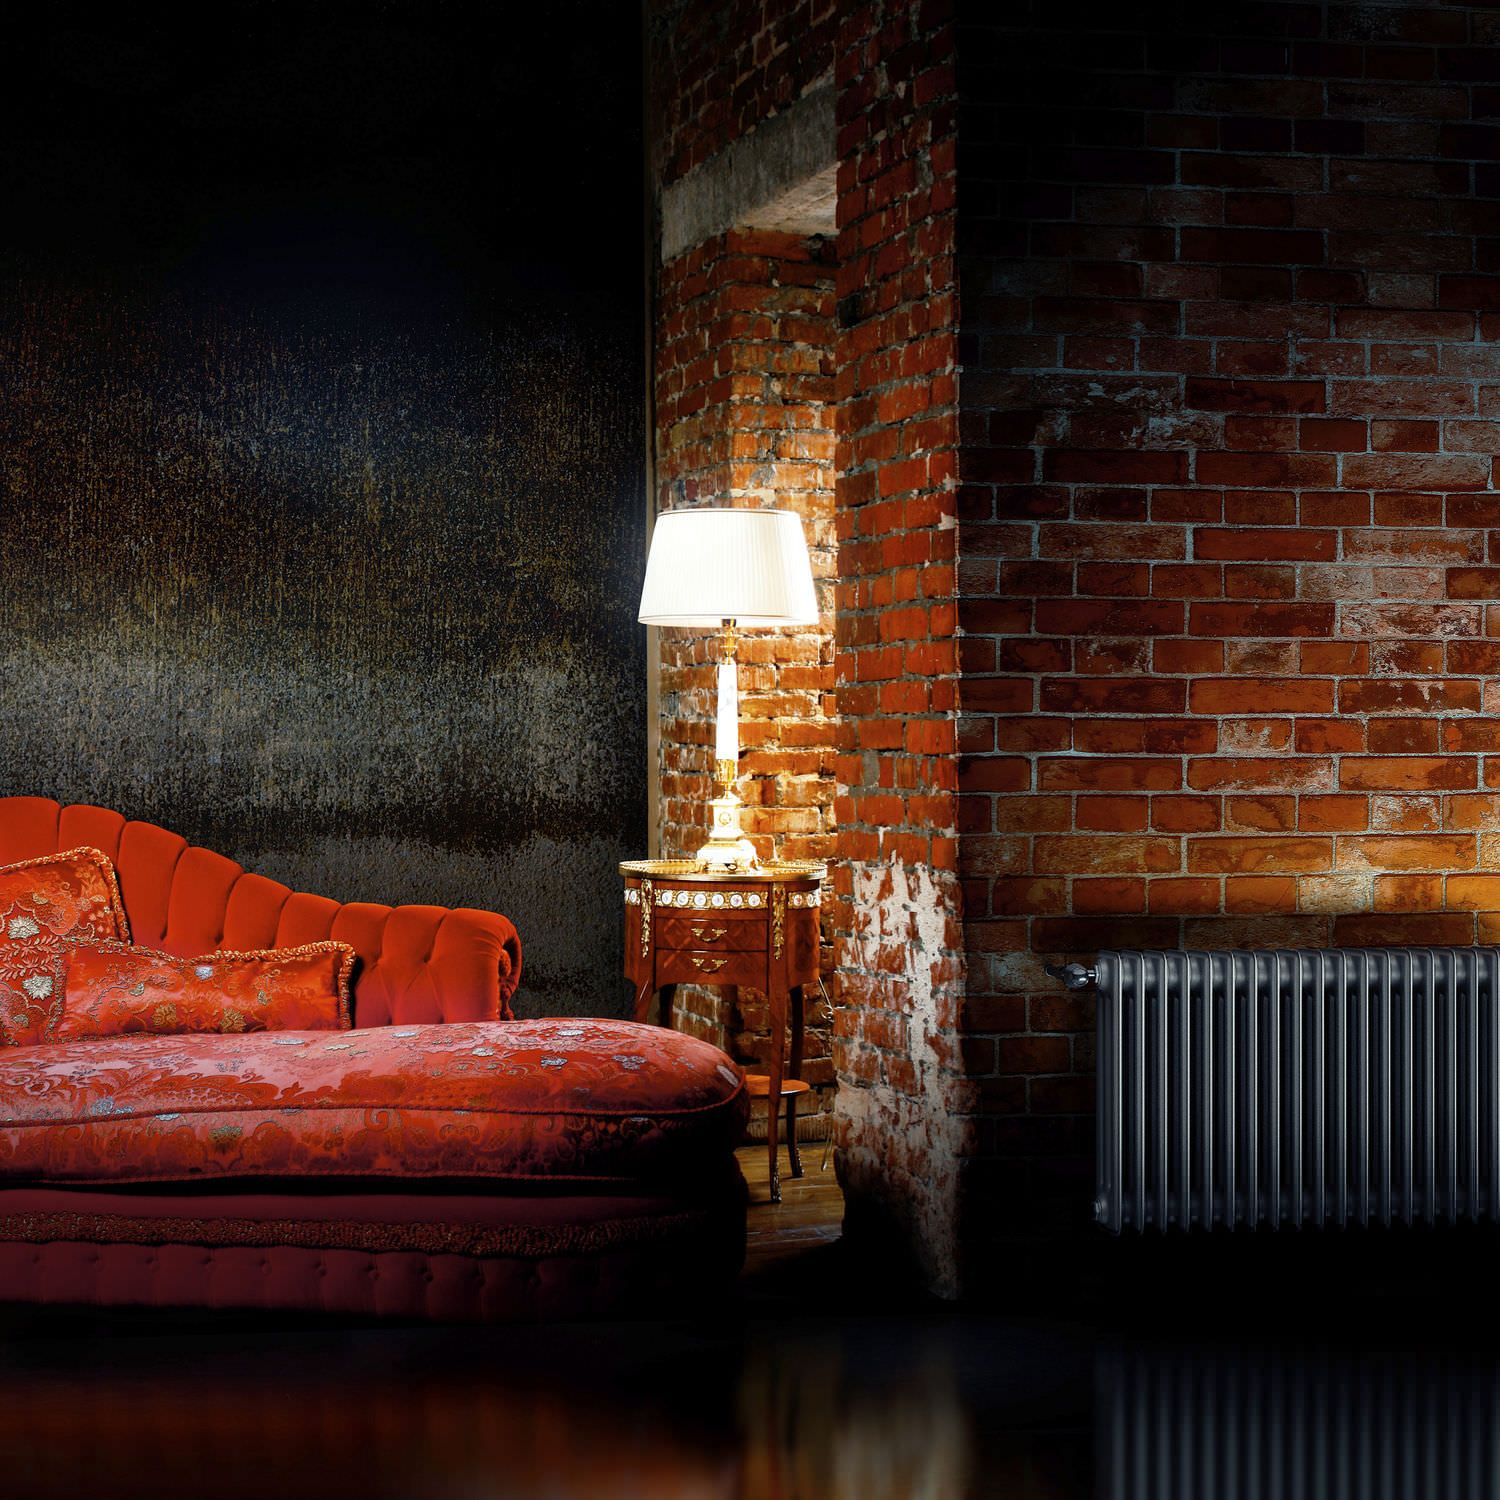 anthracite vintage cast iron radiator against bare brick wall with a red antique sofa chaise. Black Bedroom Furniture Sets. Home Design Ideas